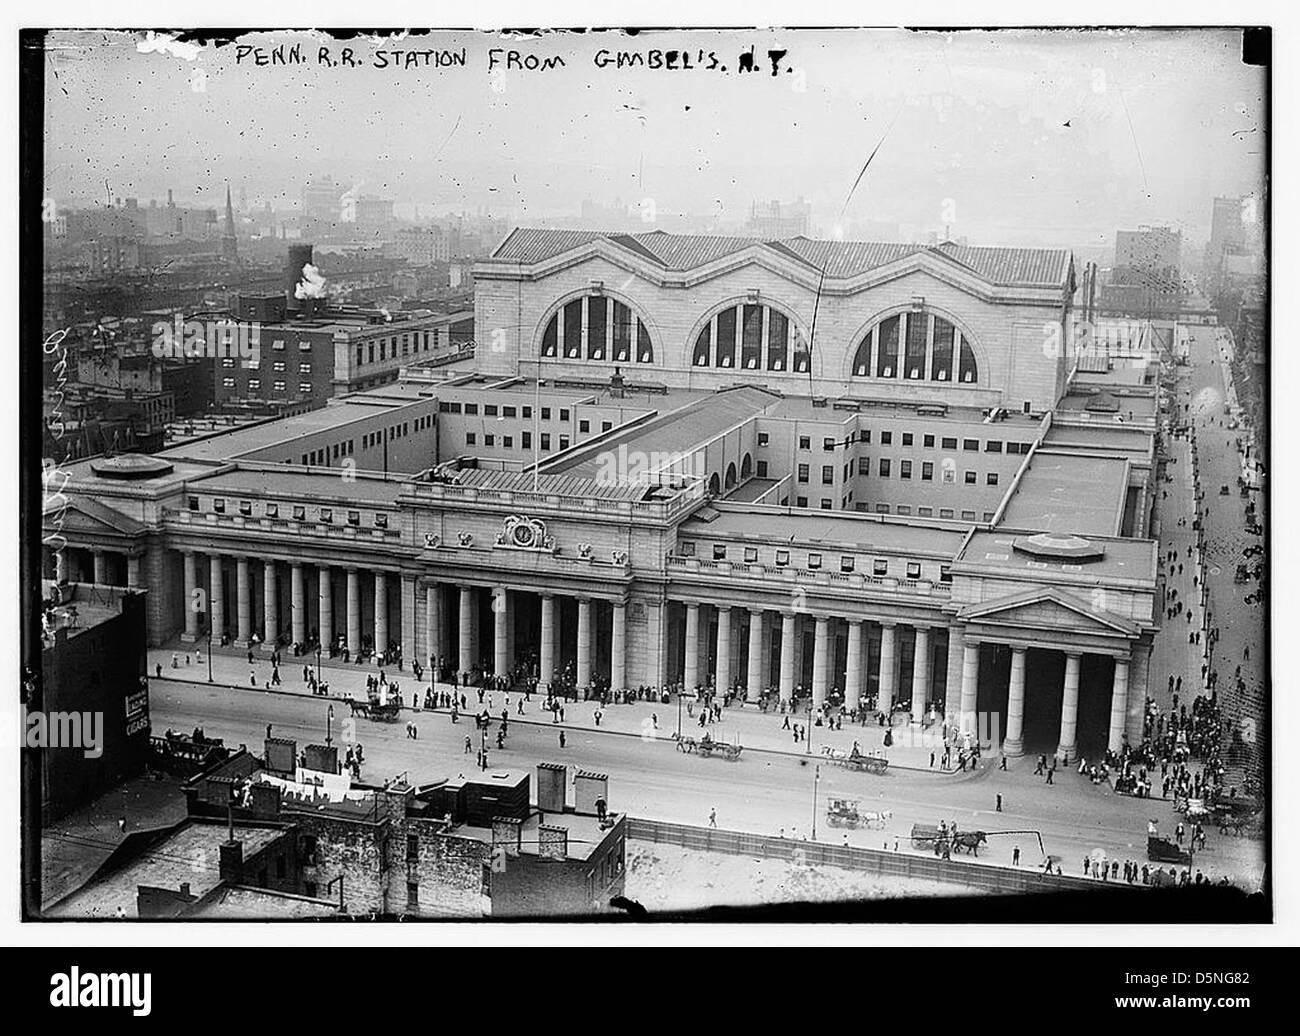 Penn. RR Station from Gimbel's N.Y. (LOC) - Stock Image